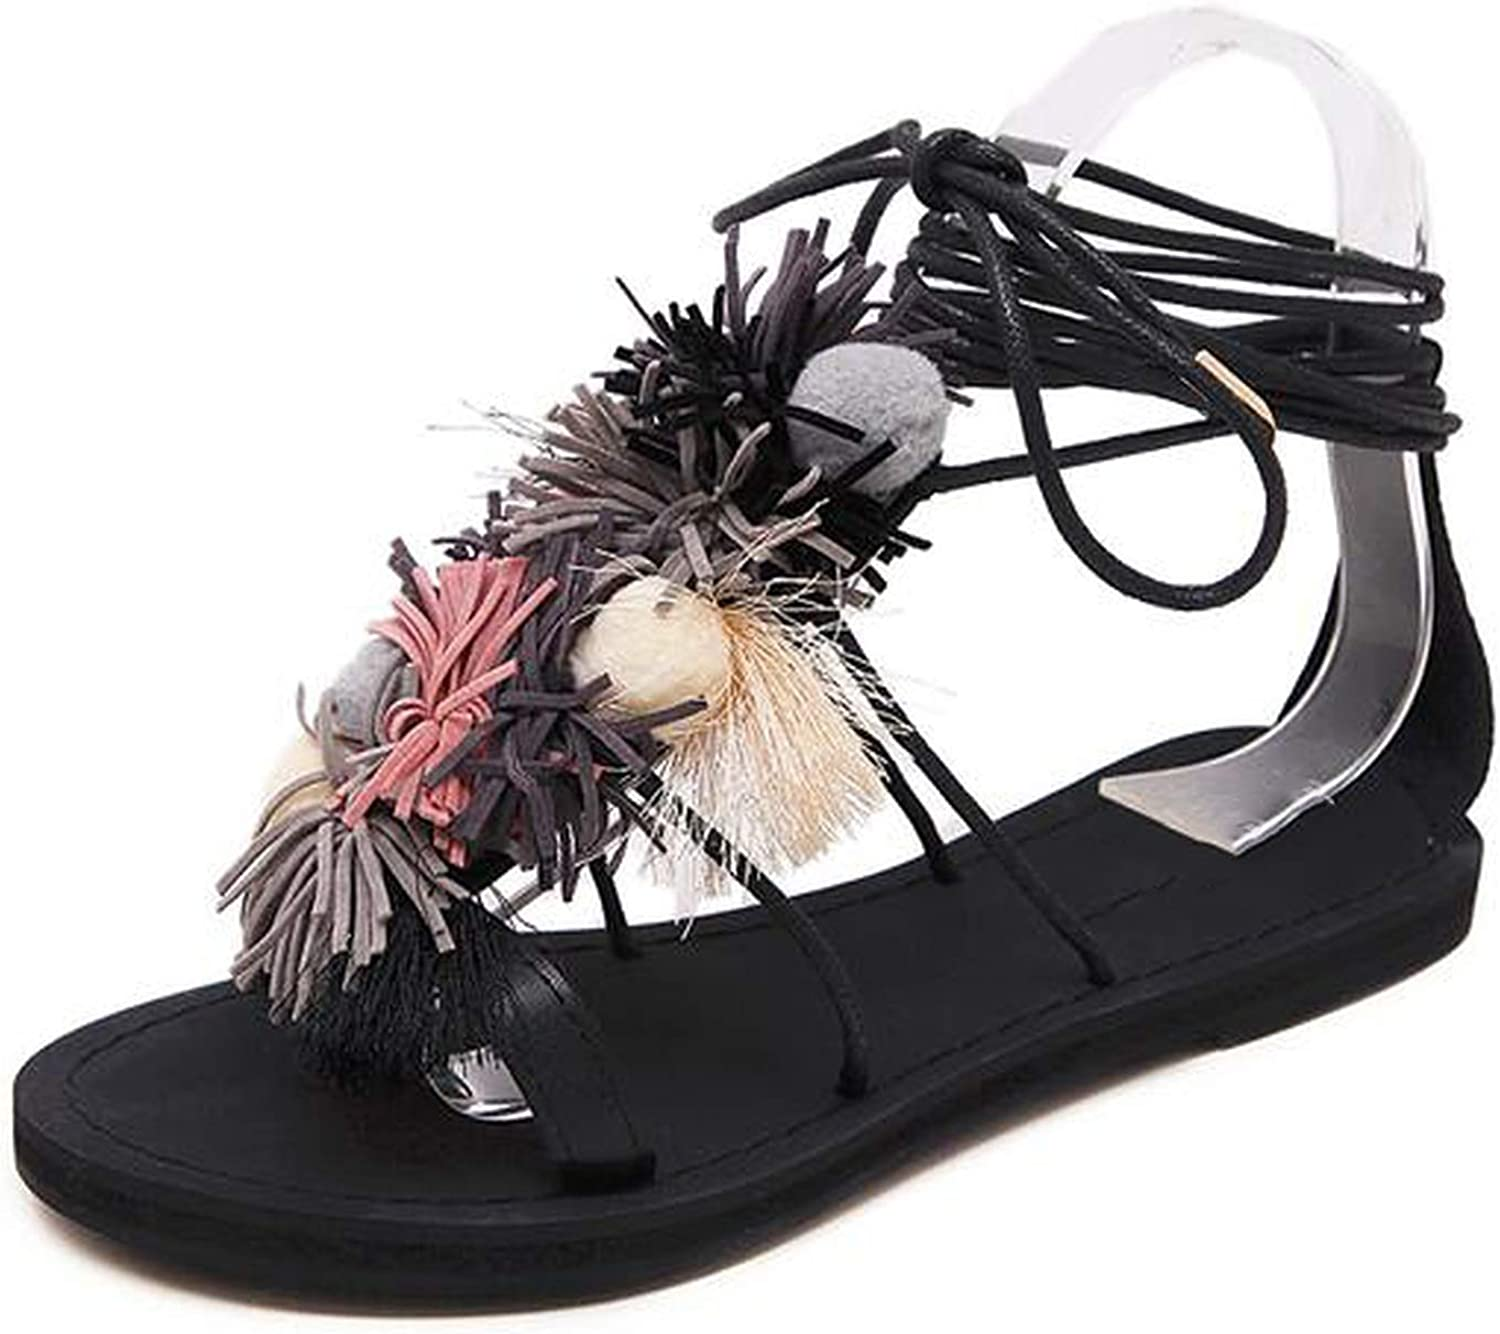 Flower Ball Pompom Sandals Sandals Flat with Roman High Lace Thong Flip Flop shoes Woman